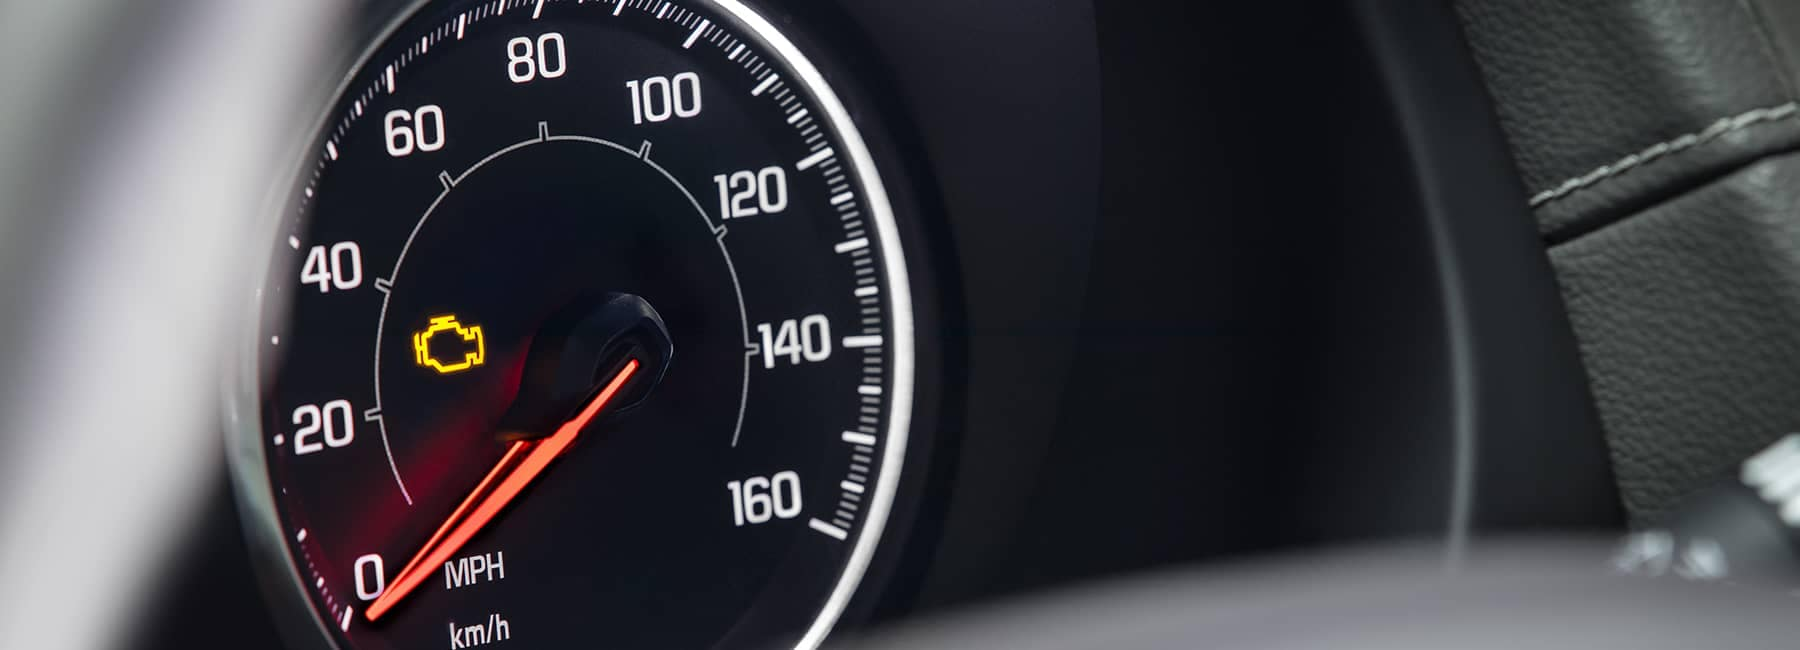 closeup of check engine light in dashboard